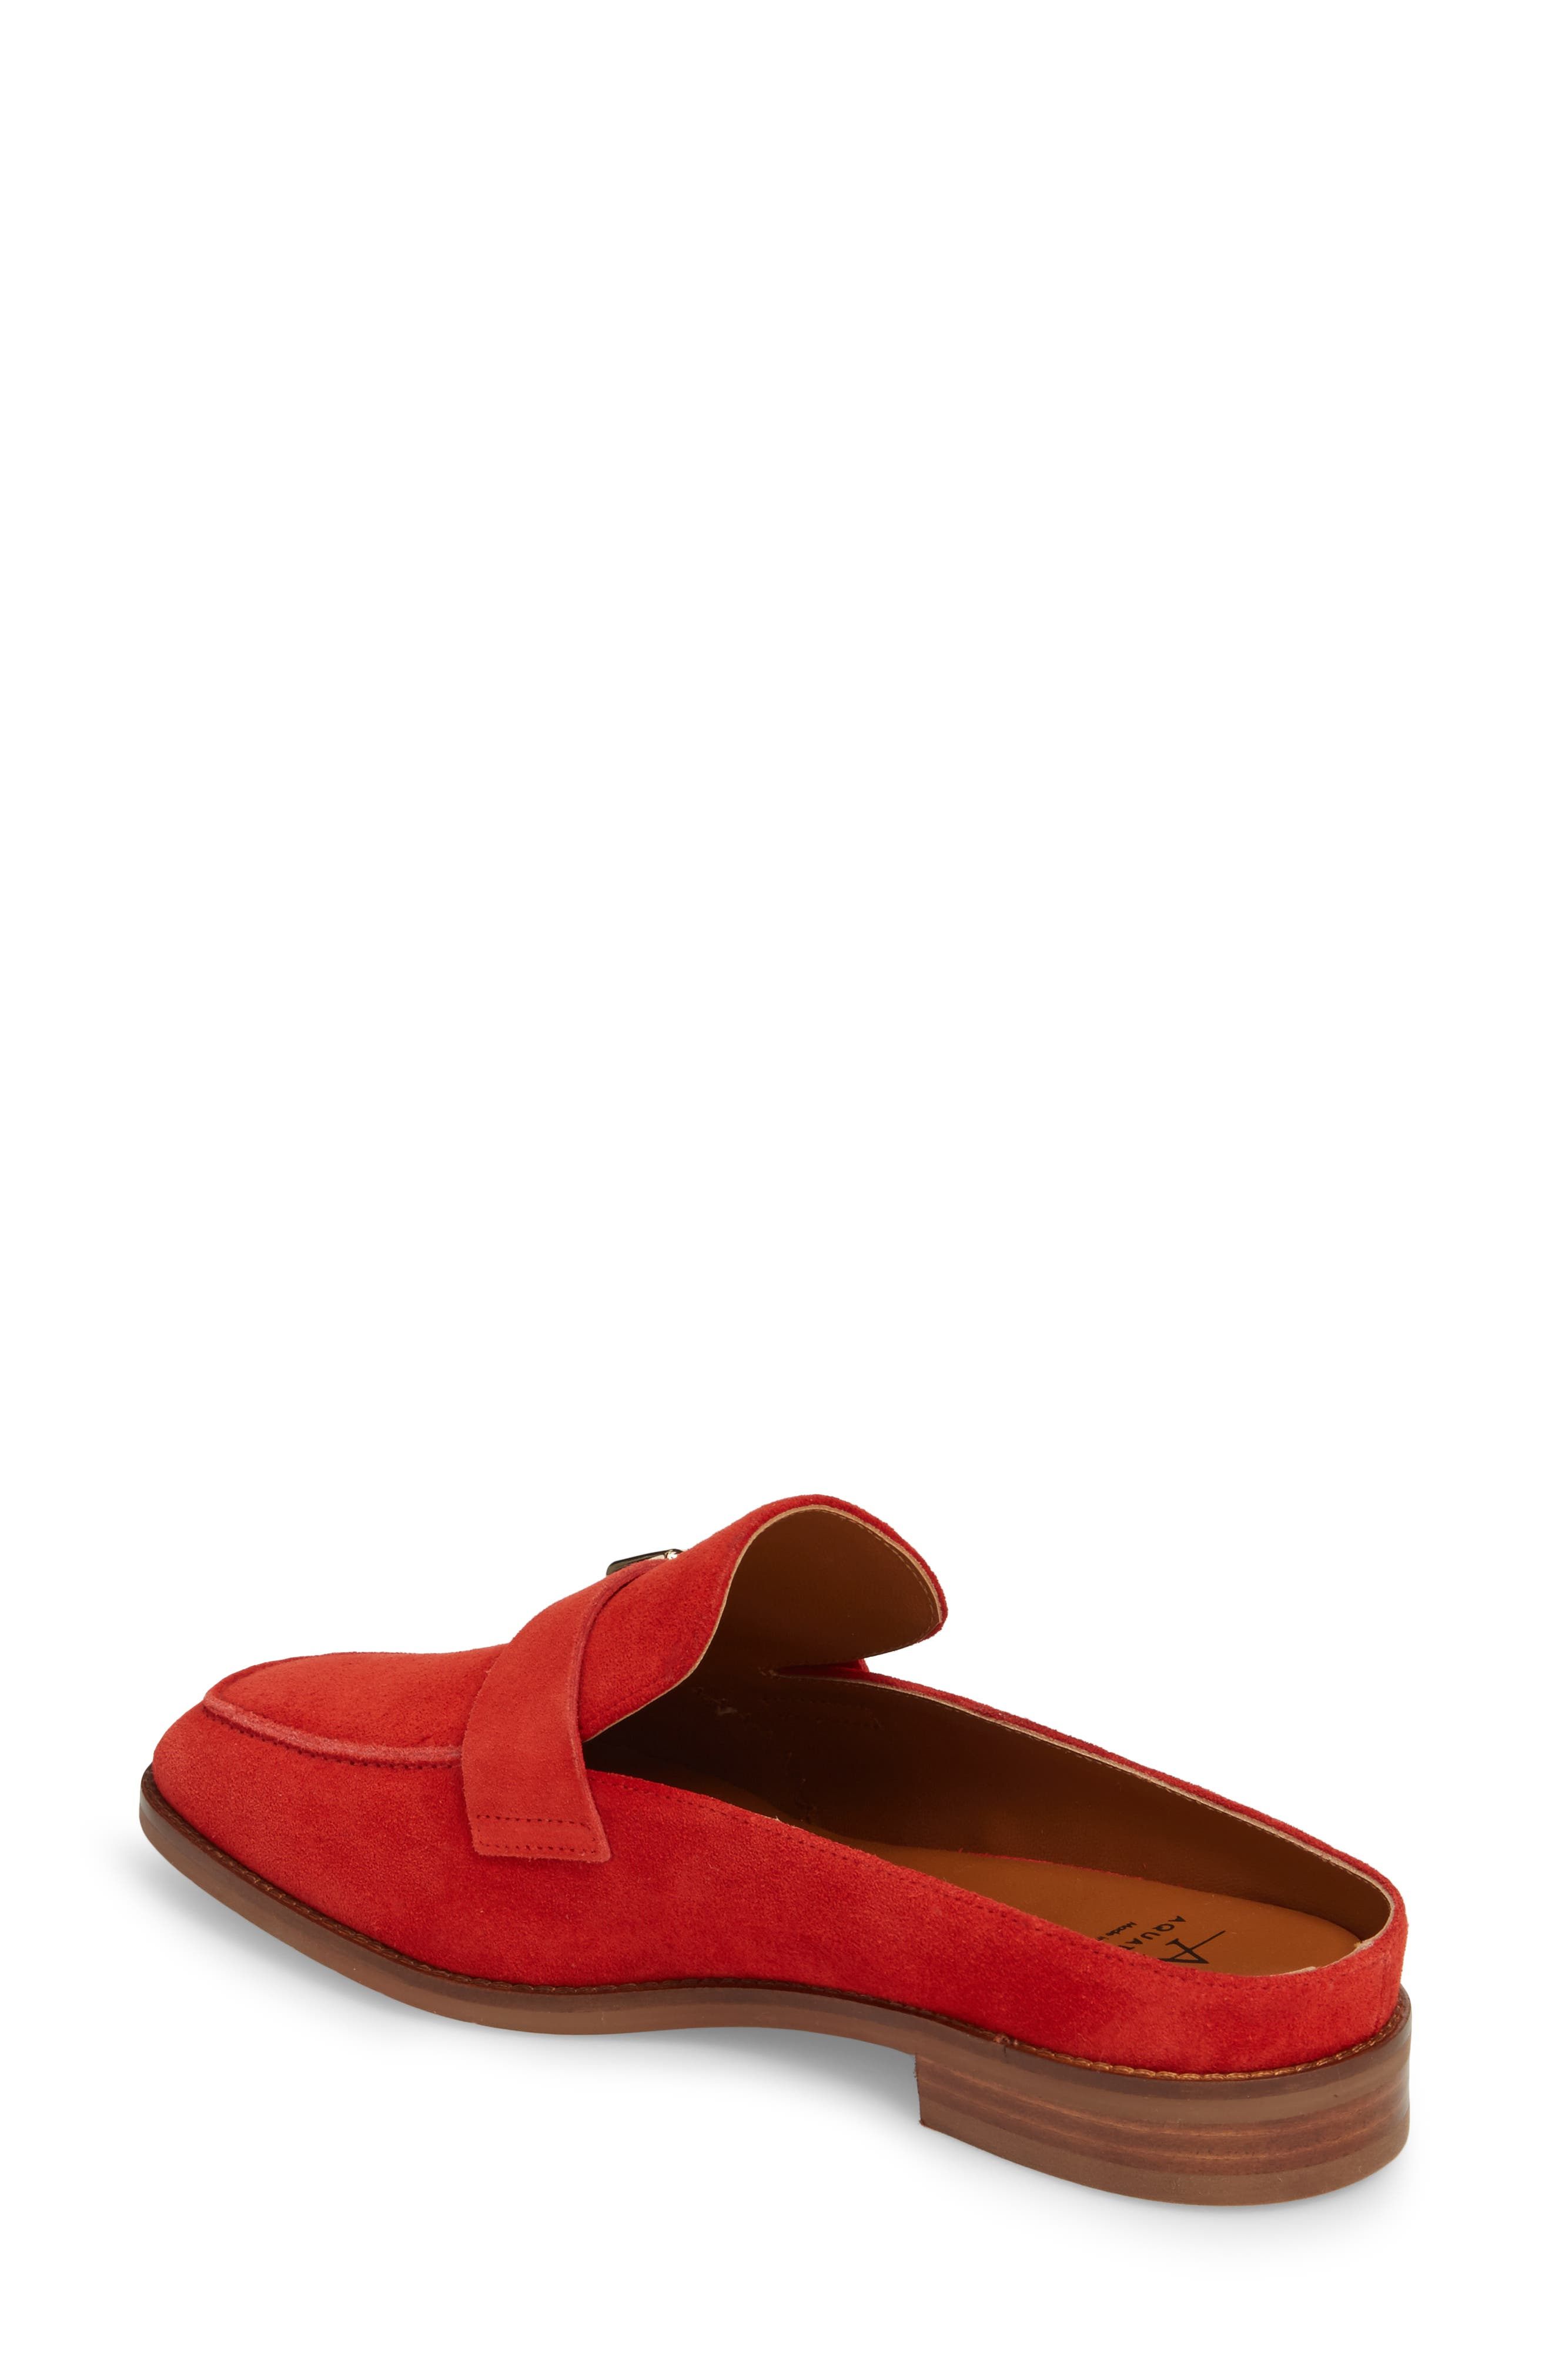 Tosca Loafer Mule,                             Alternate thumbnail 4, color,